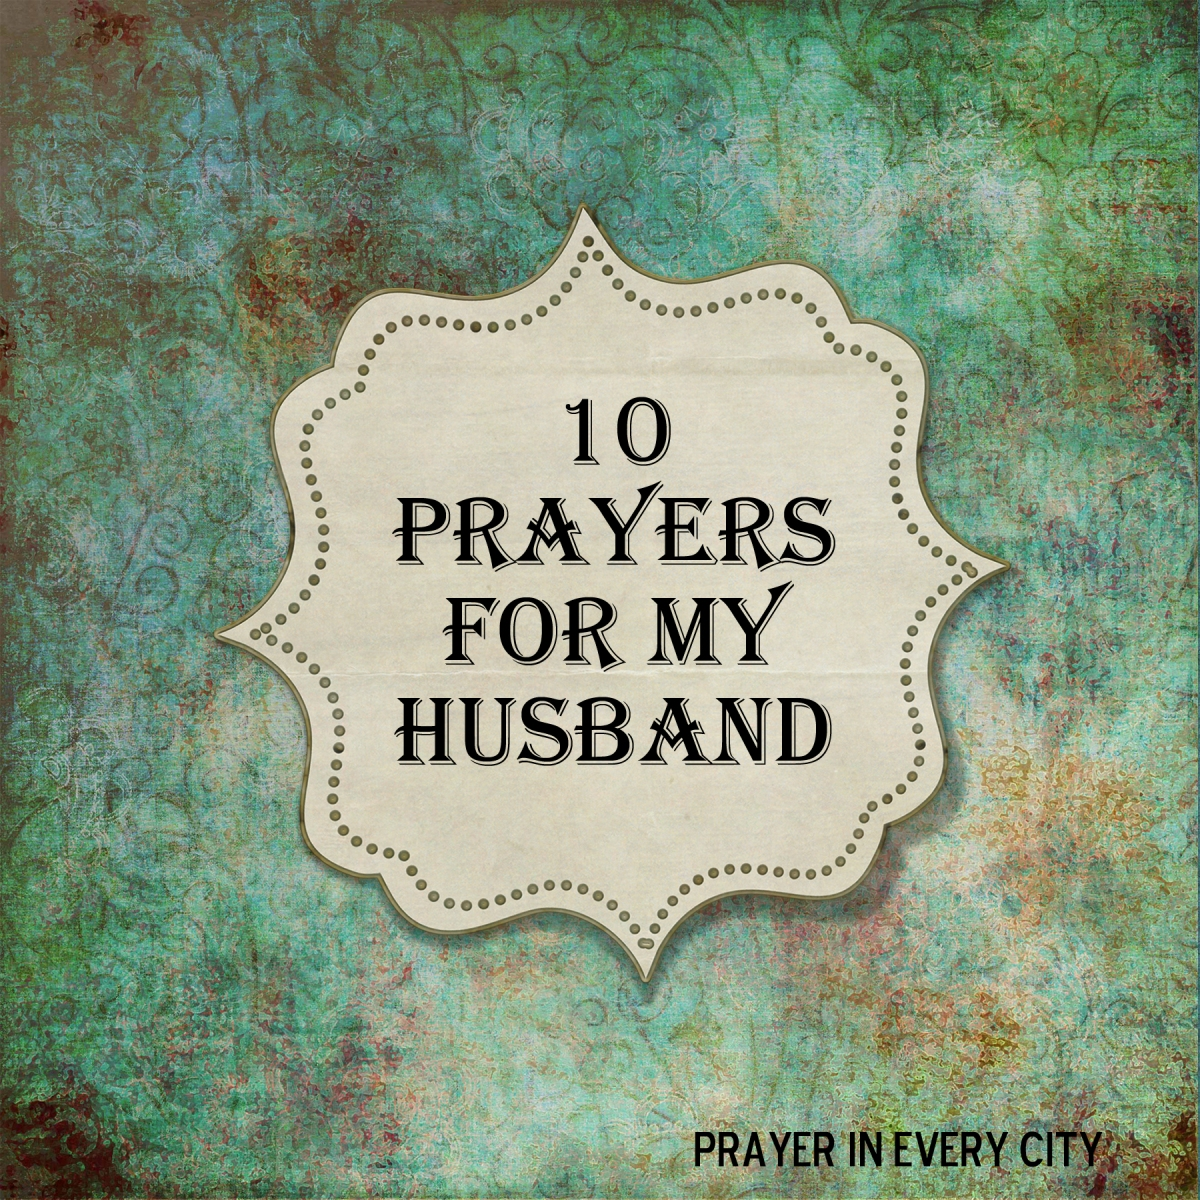 10 Prayers for My Husband